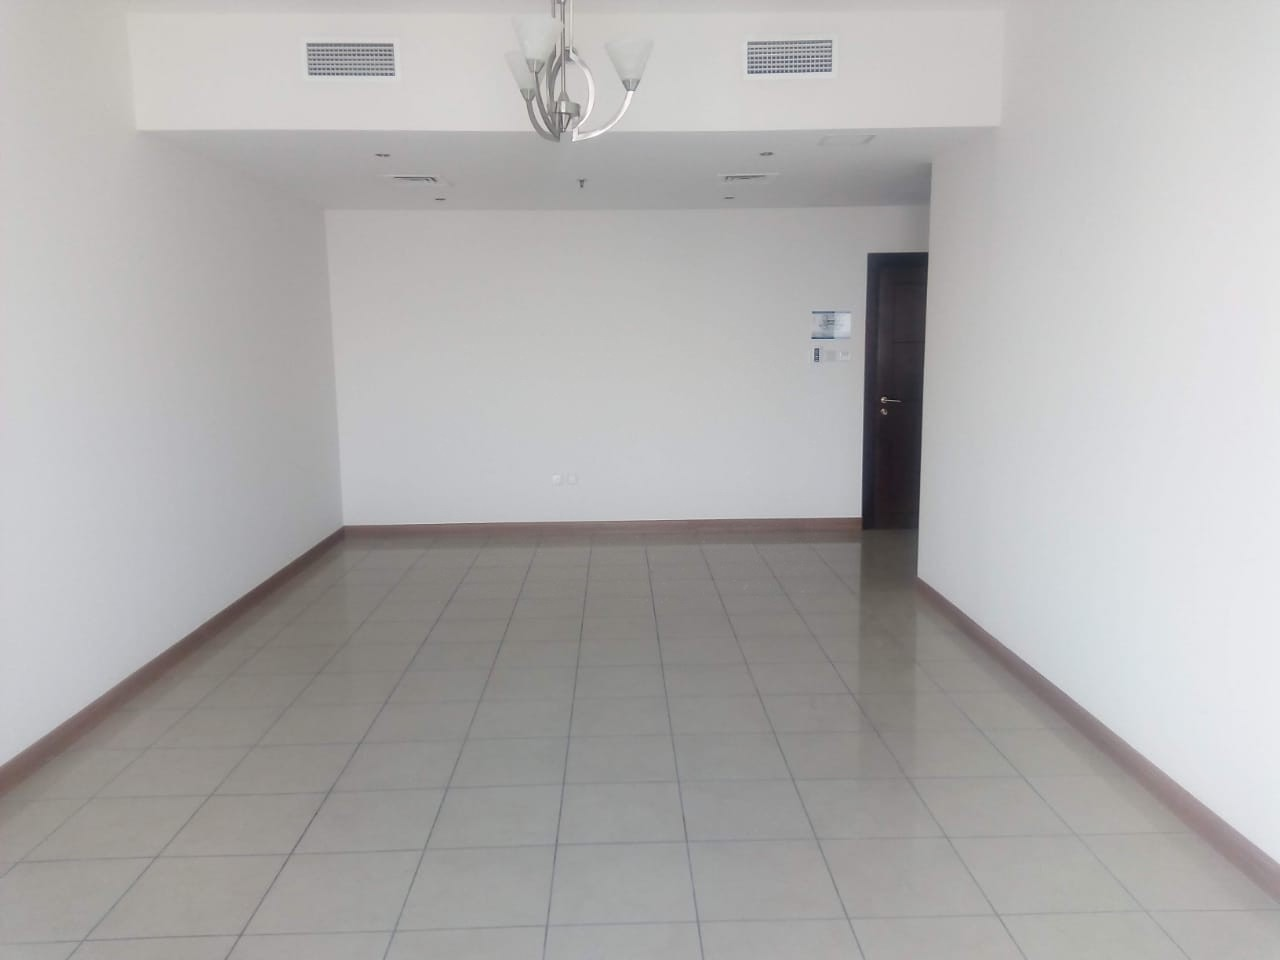 High floor |Unfurnished| 3 bedroom flat|Maids rm  for rent in Sulafa Tower